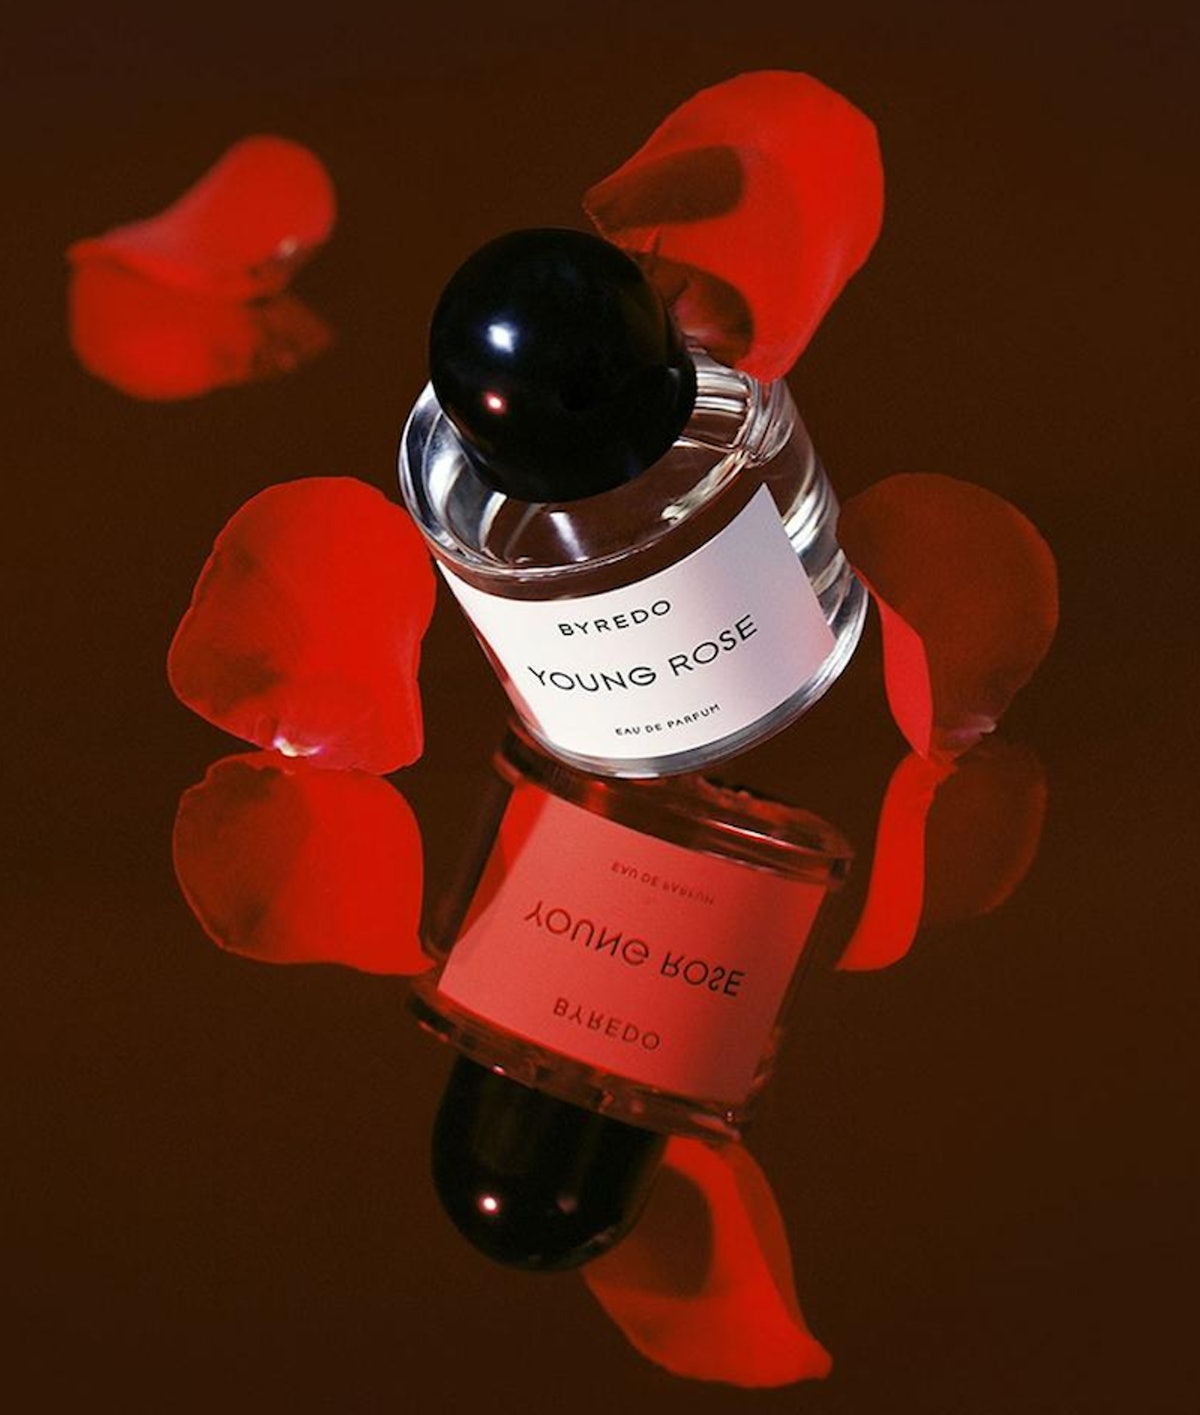 Byredo Young Rose covered in rose petals, shot by Leslie Zhang